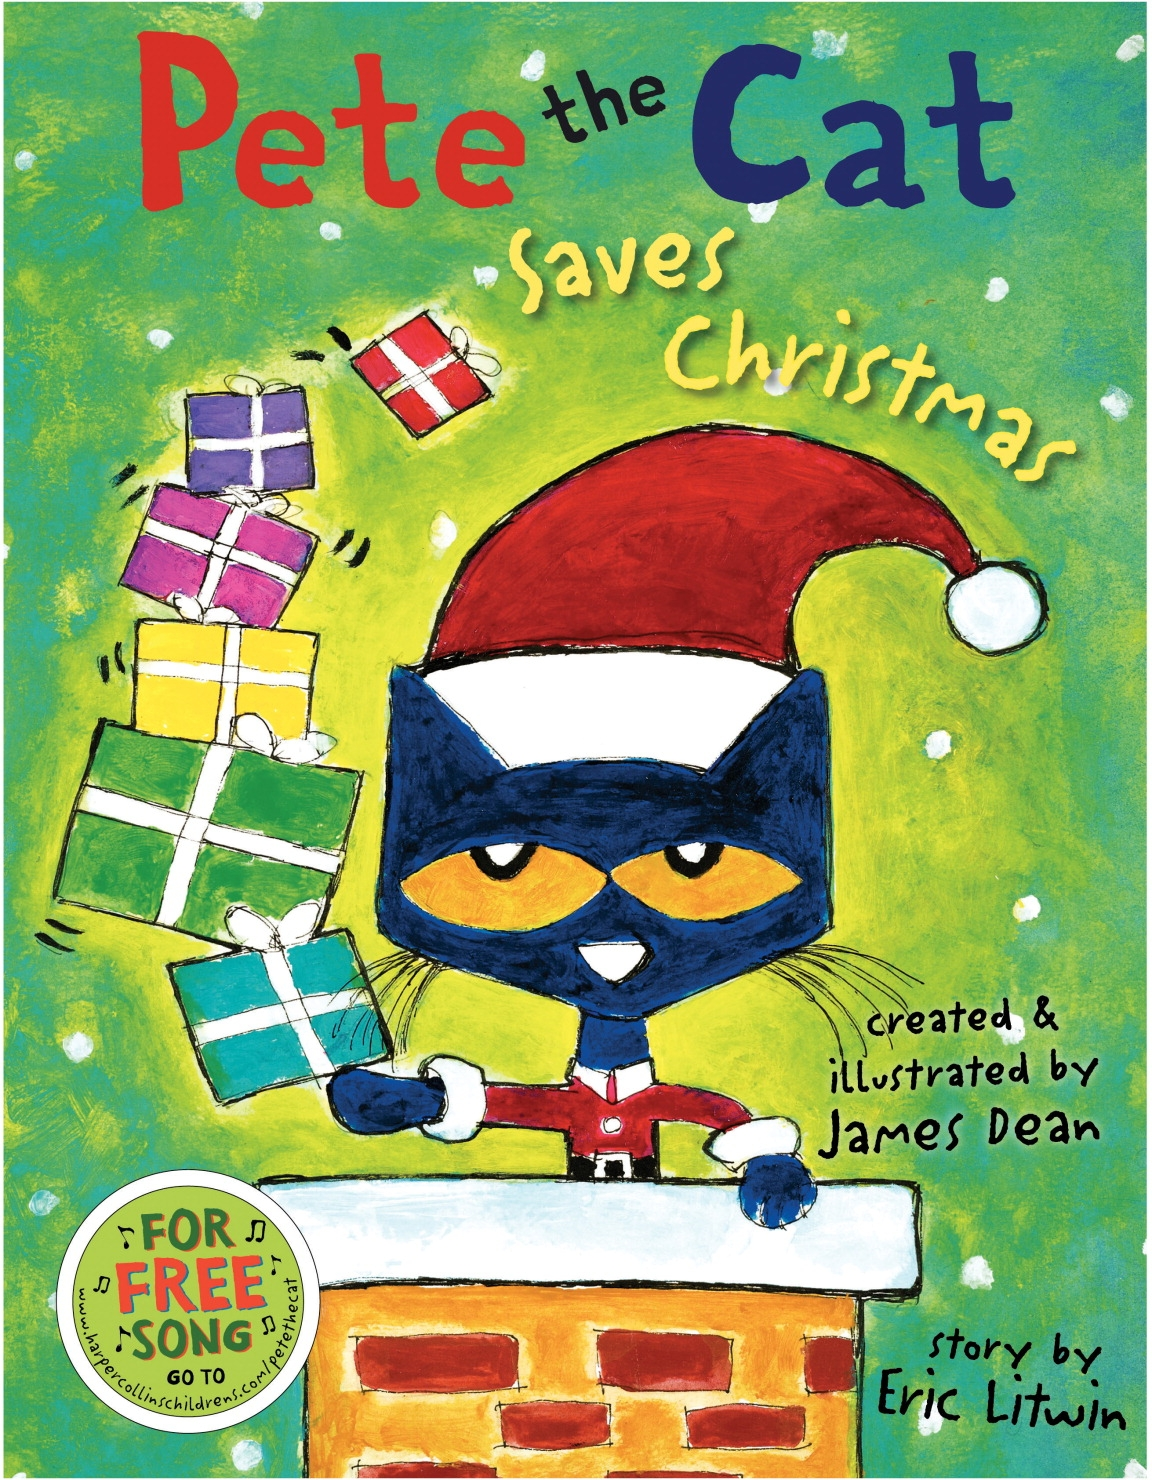 Facilities Management Cat Products Interactive Plush Toys - 1429759 - Harper Collins Pete The Cat Saves Christmas Book 1429759